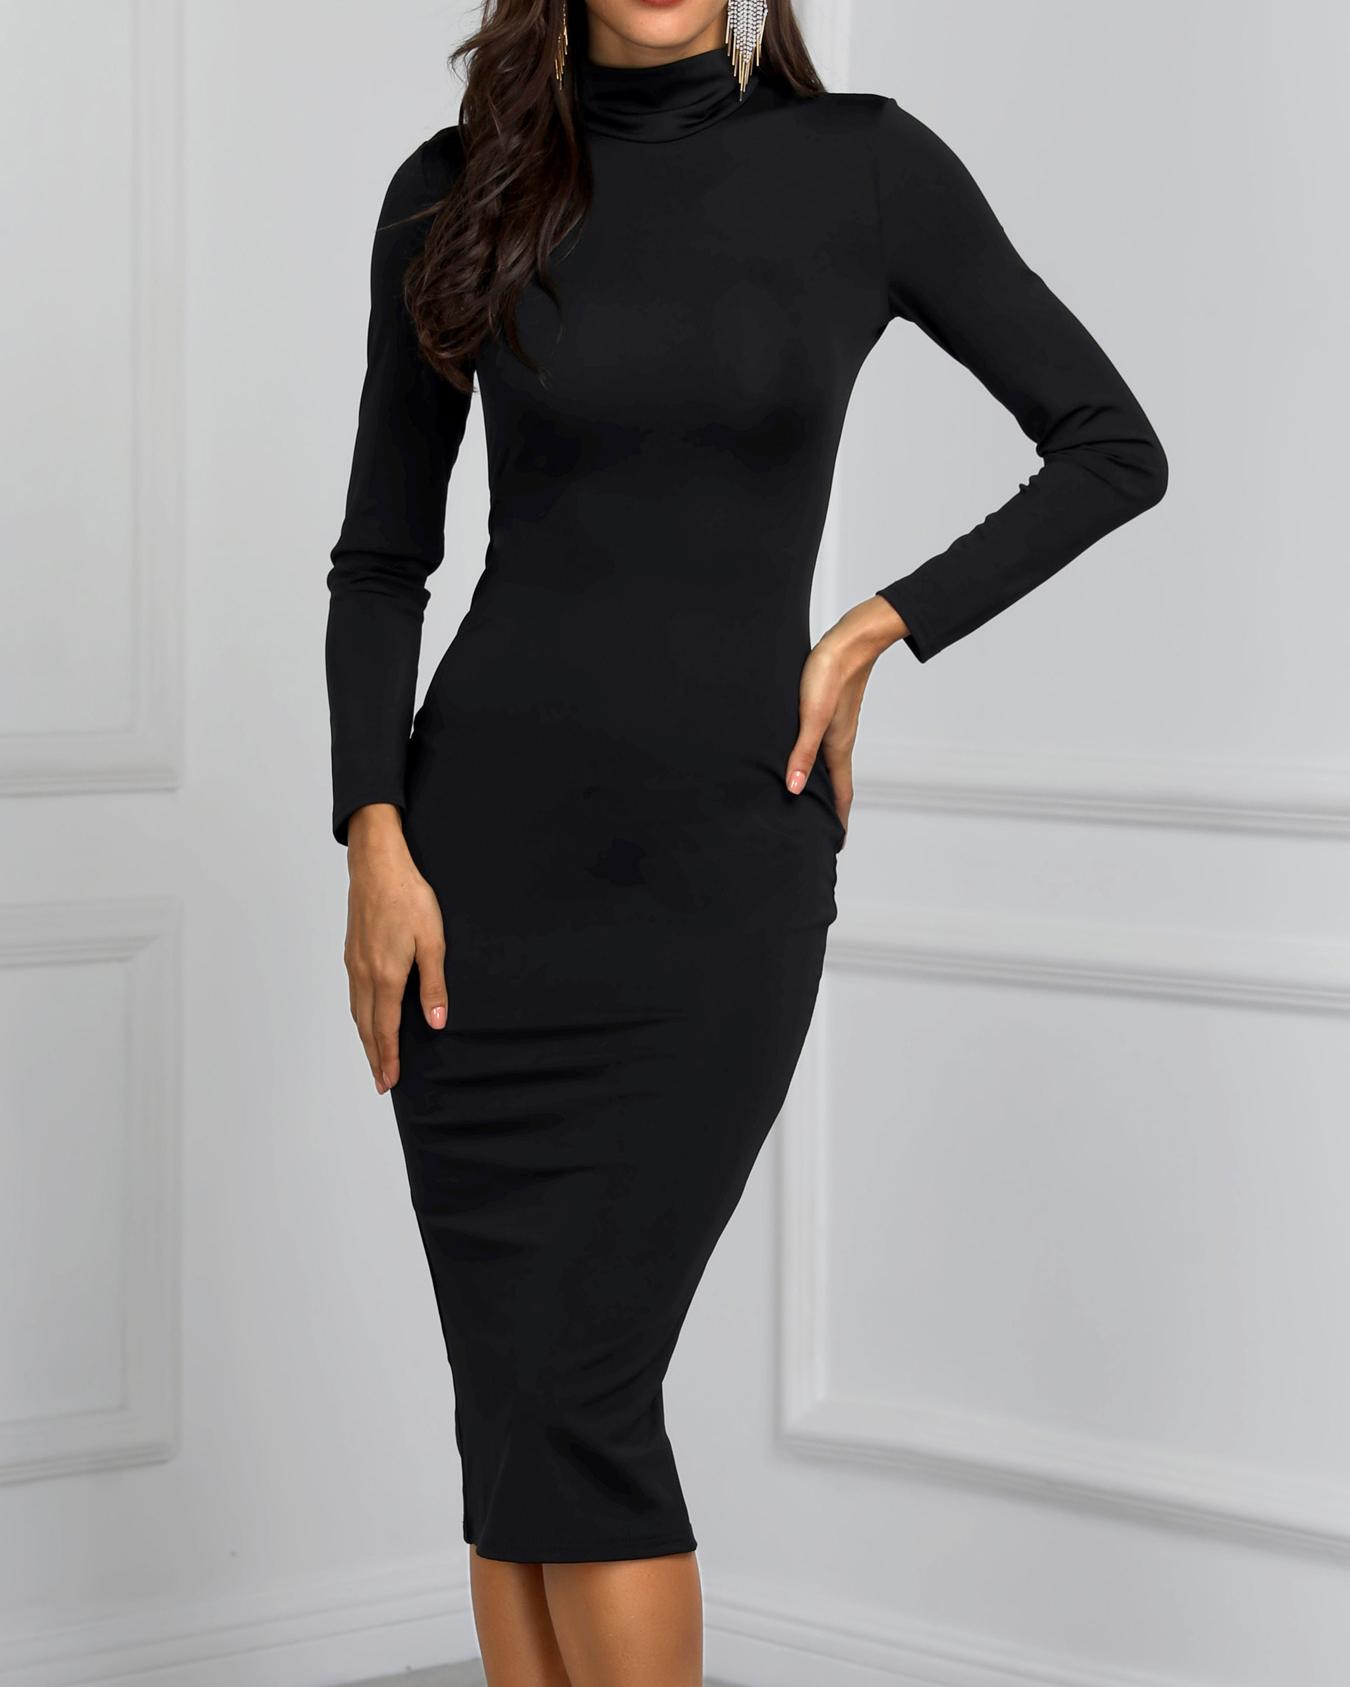 High Neck Long Sleeve Slinky Dress